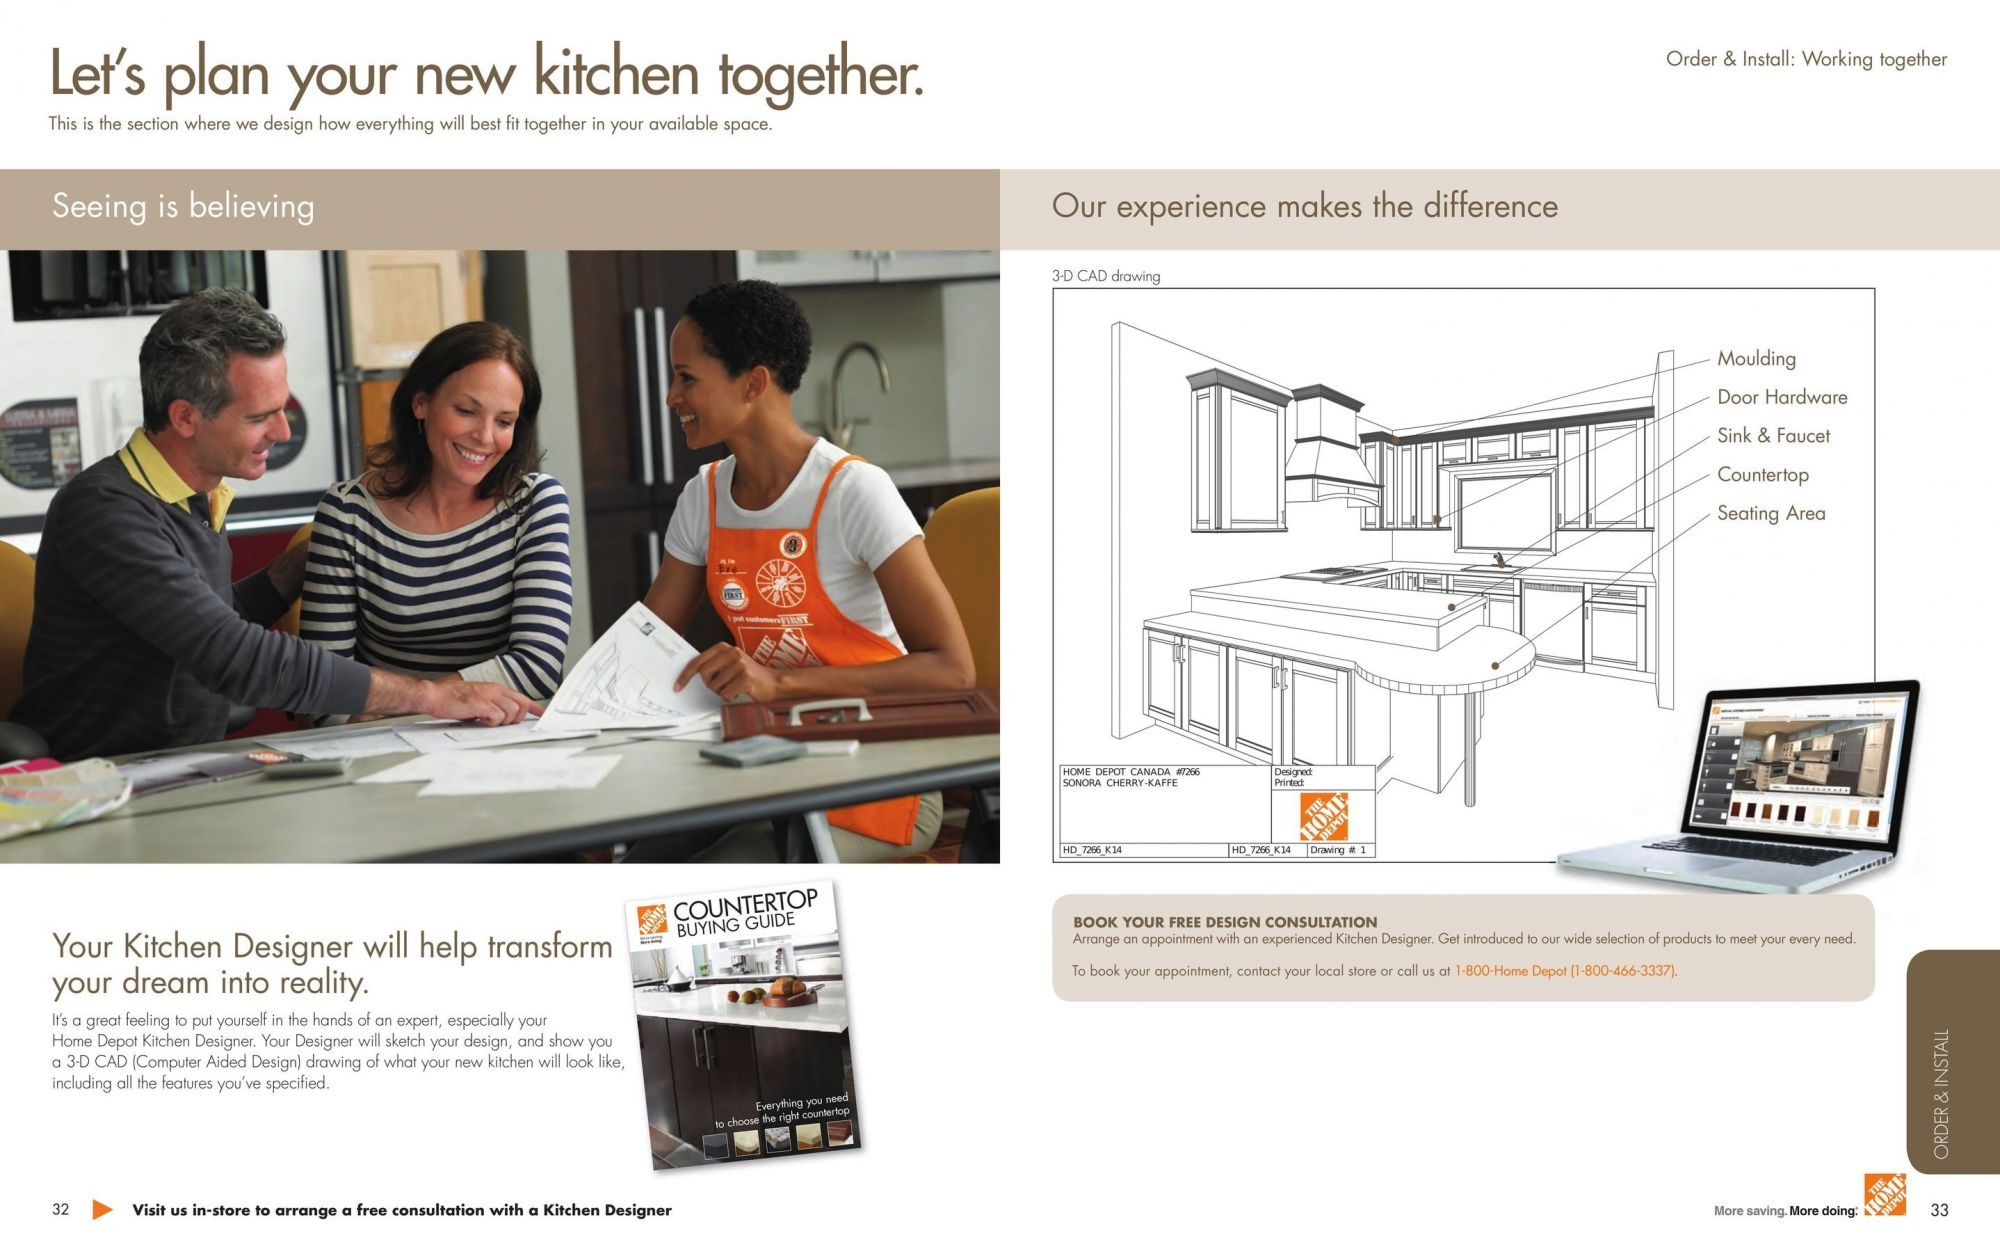 Flyer Home Depot Kitchen Planning Guide Canada From Tuesday April 24 2018 To Monday December 31 2018 Home Depot Home Depot Kitchen Kitchen Plans